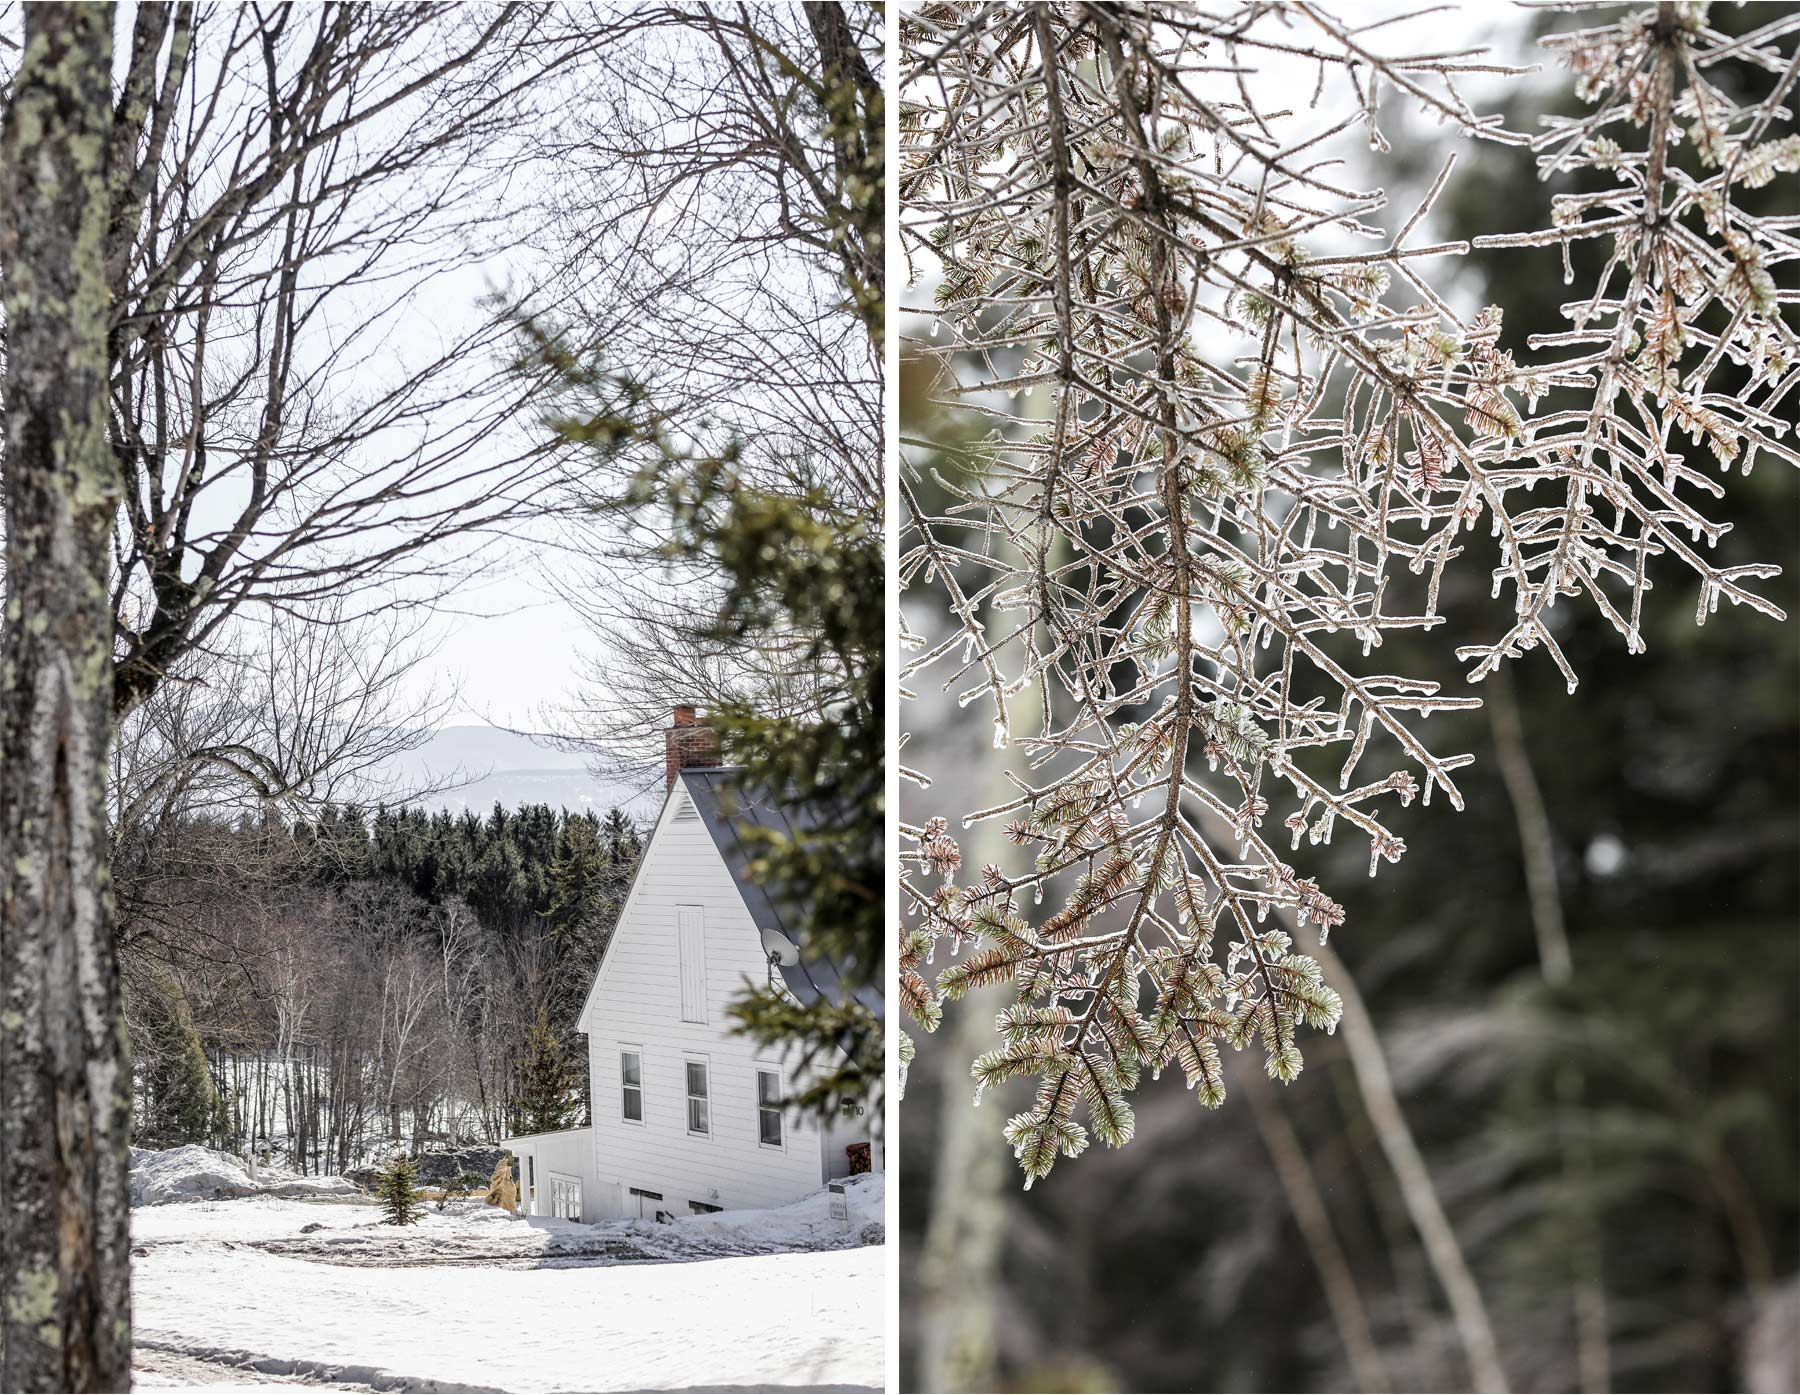 09-Stowe-Vermont-by-Andrew-Vick-Photography-Edson-Hill-Winter-Lodge-Frozen-Trees.jpg